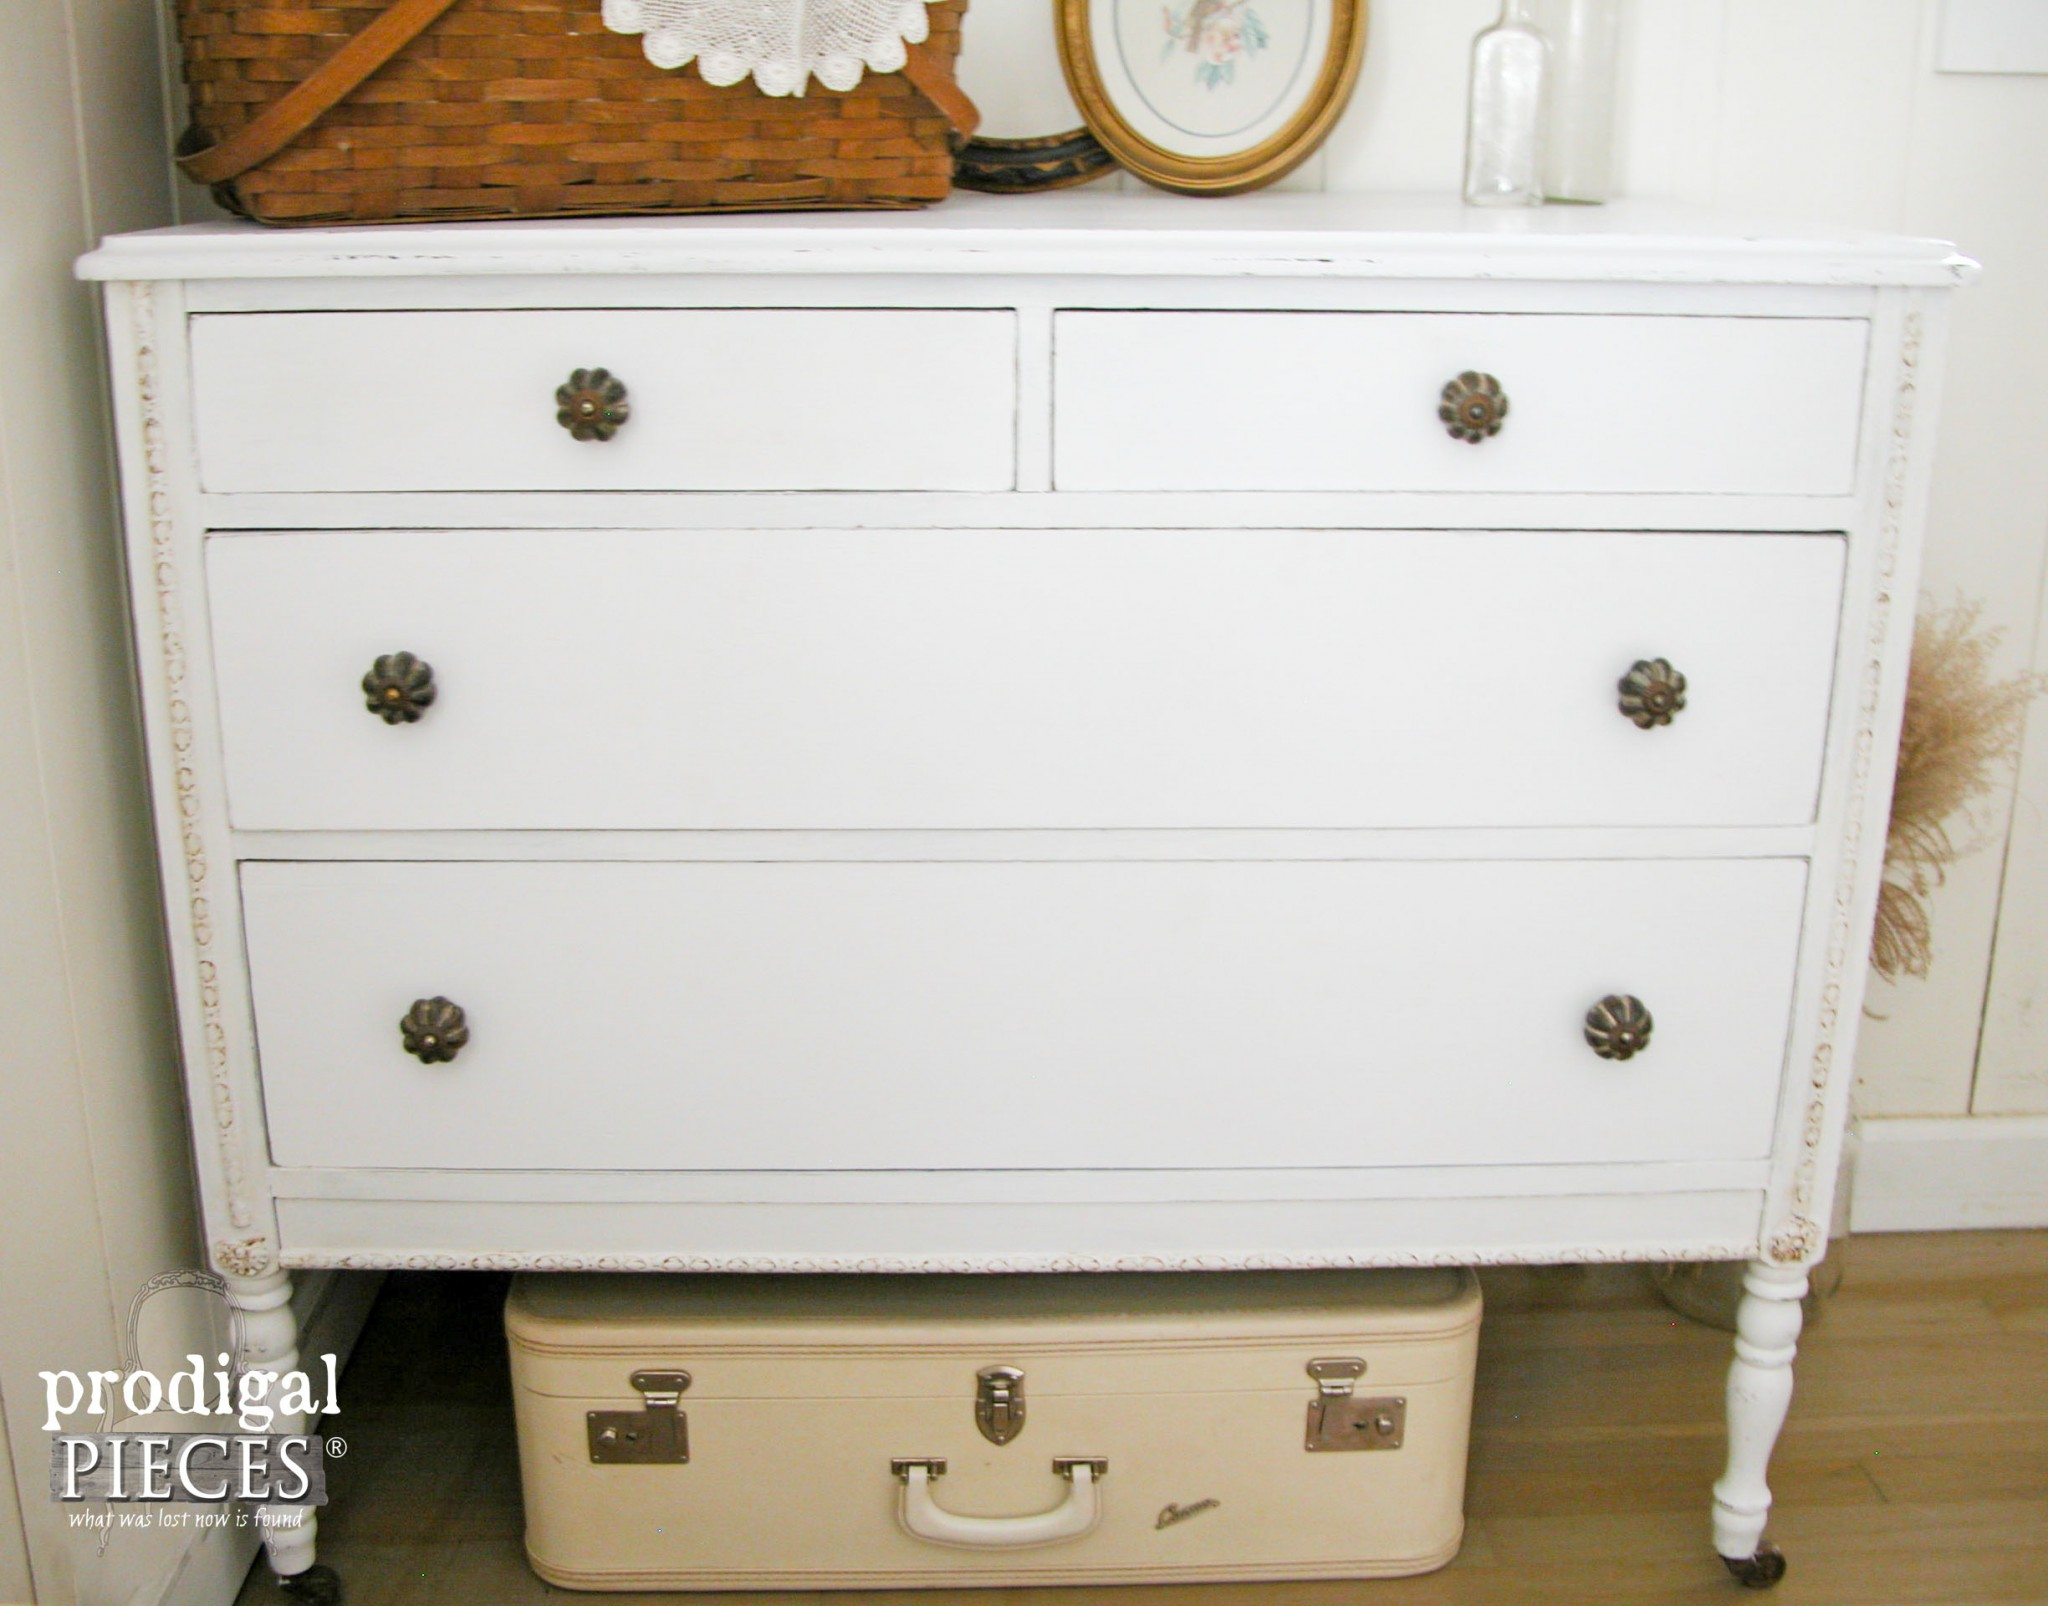 White Farmhouse Distressed Dresser with Classic White Paint by Prodigal Pieces | www.prodigalpieces.com